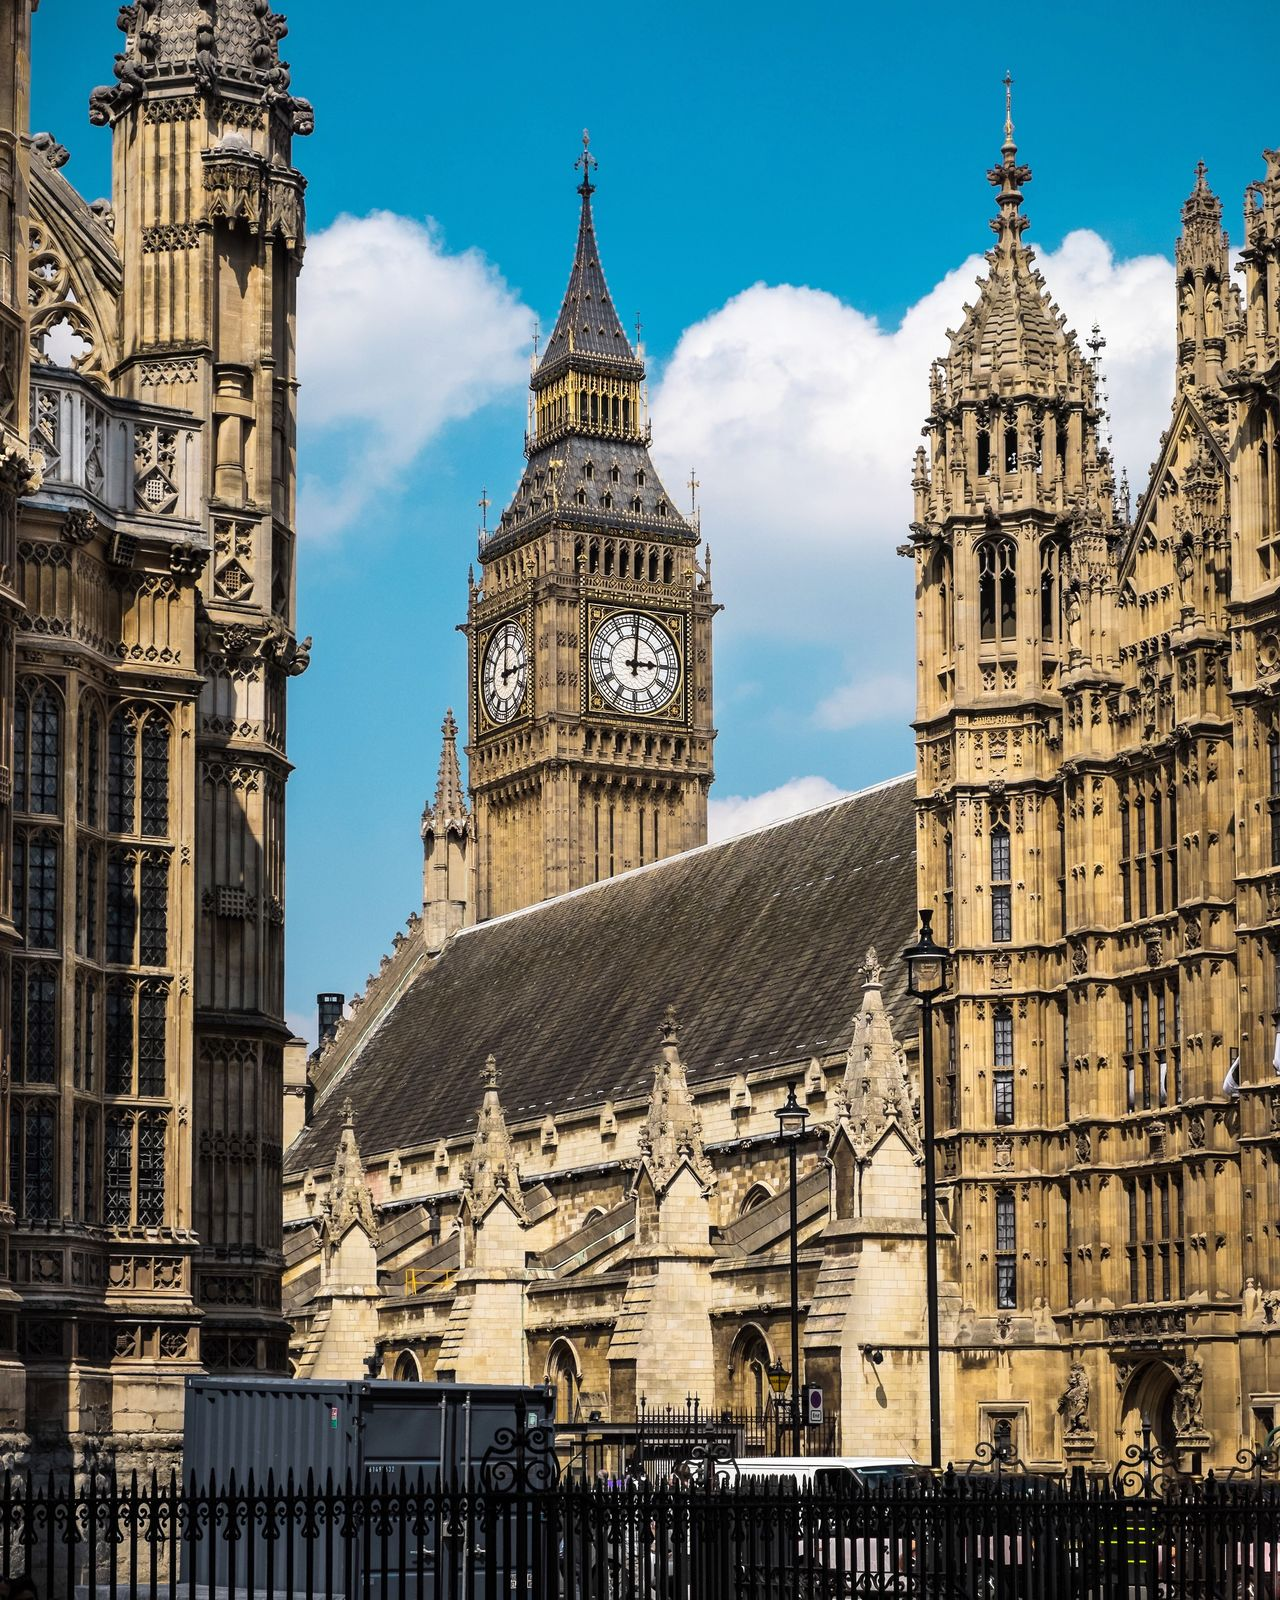 Big Ben Architecture Big Ben Bigben Building Exterior Built Structure City Cityscape Clock Clock Tower Cloud - Sky Cultures Day Façade Government No People Outdoors Politics And Government Sky Tourism Tower Travel Travel Travel Destinations Westminster